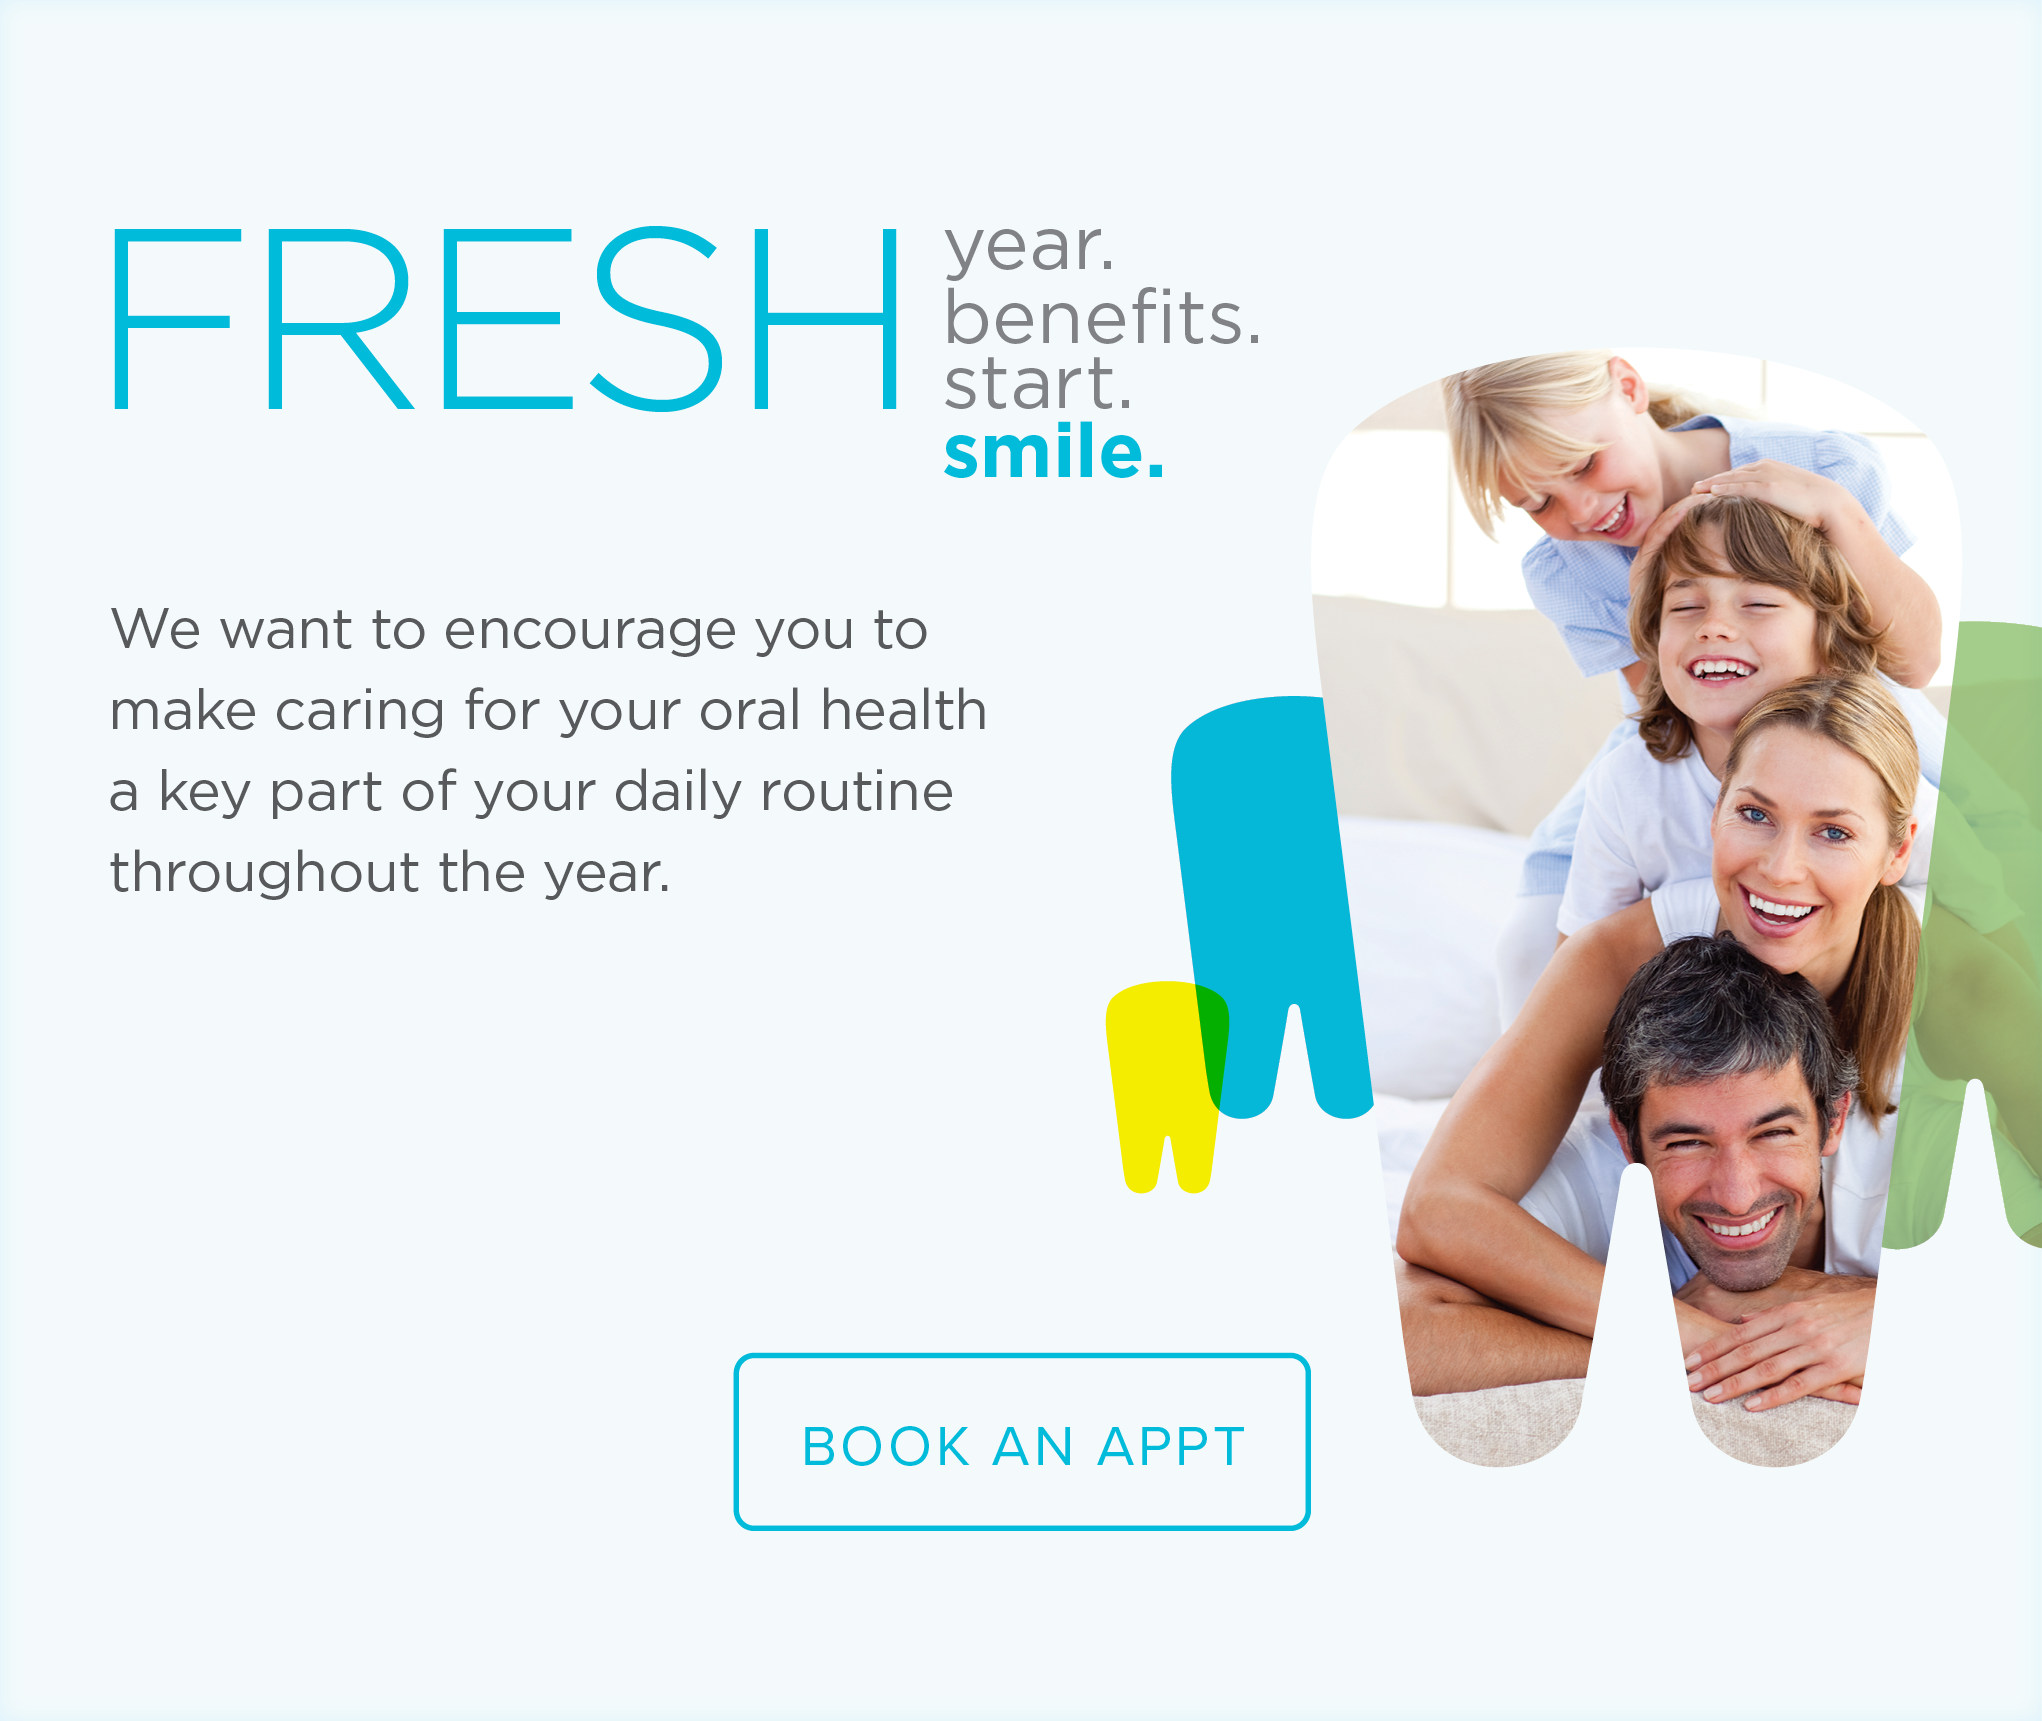 Park West Dental Group and Orthodontics - Make the Most of Your Benefits